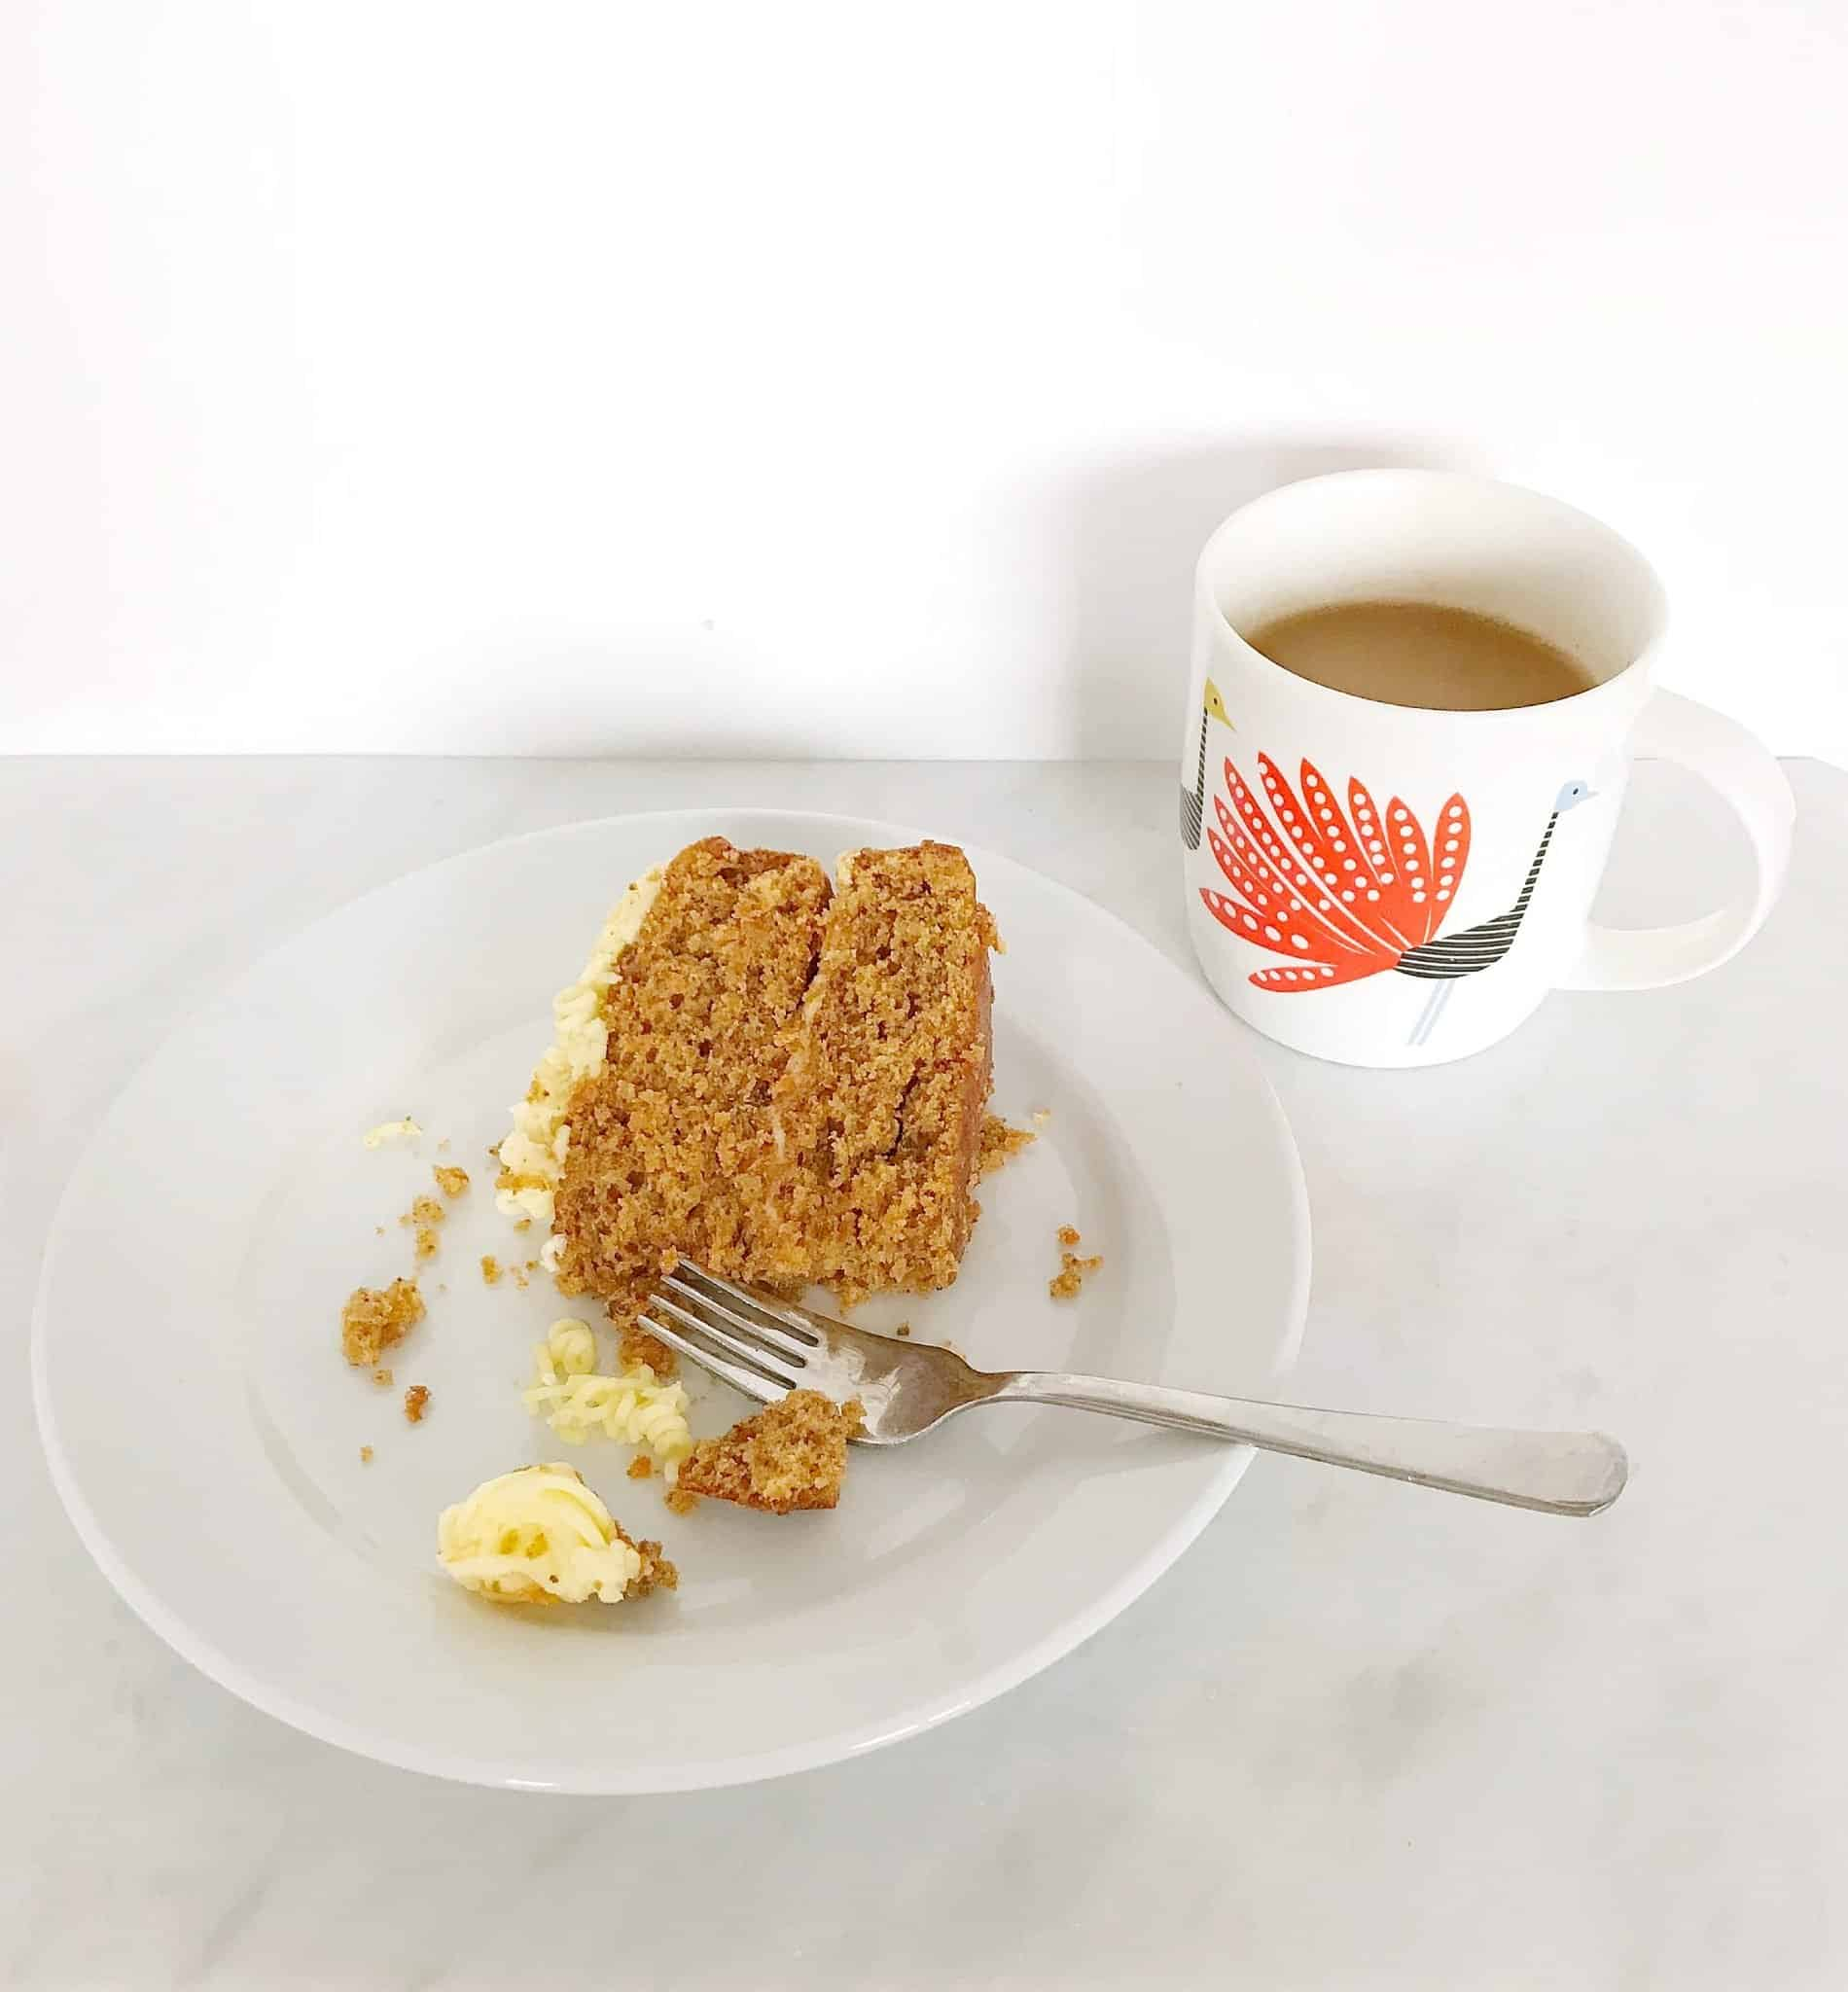 Home made carrot cake with tea